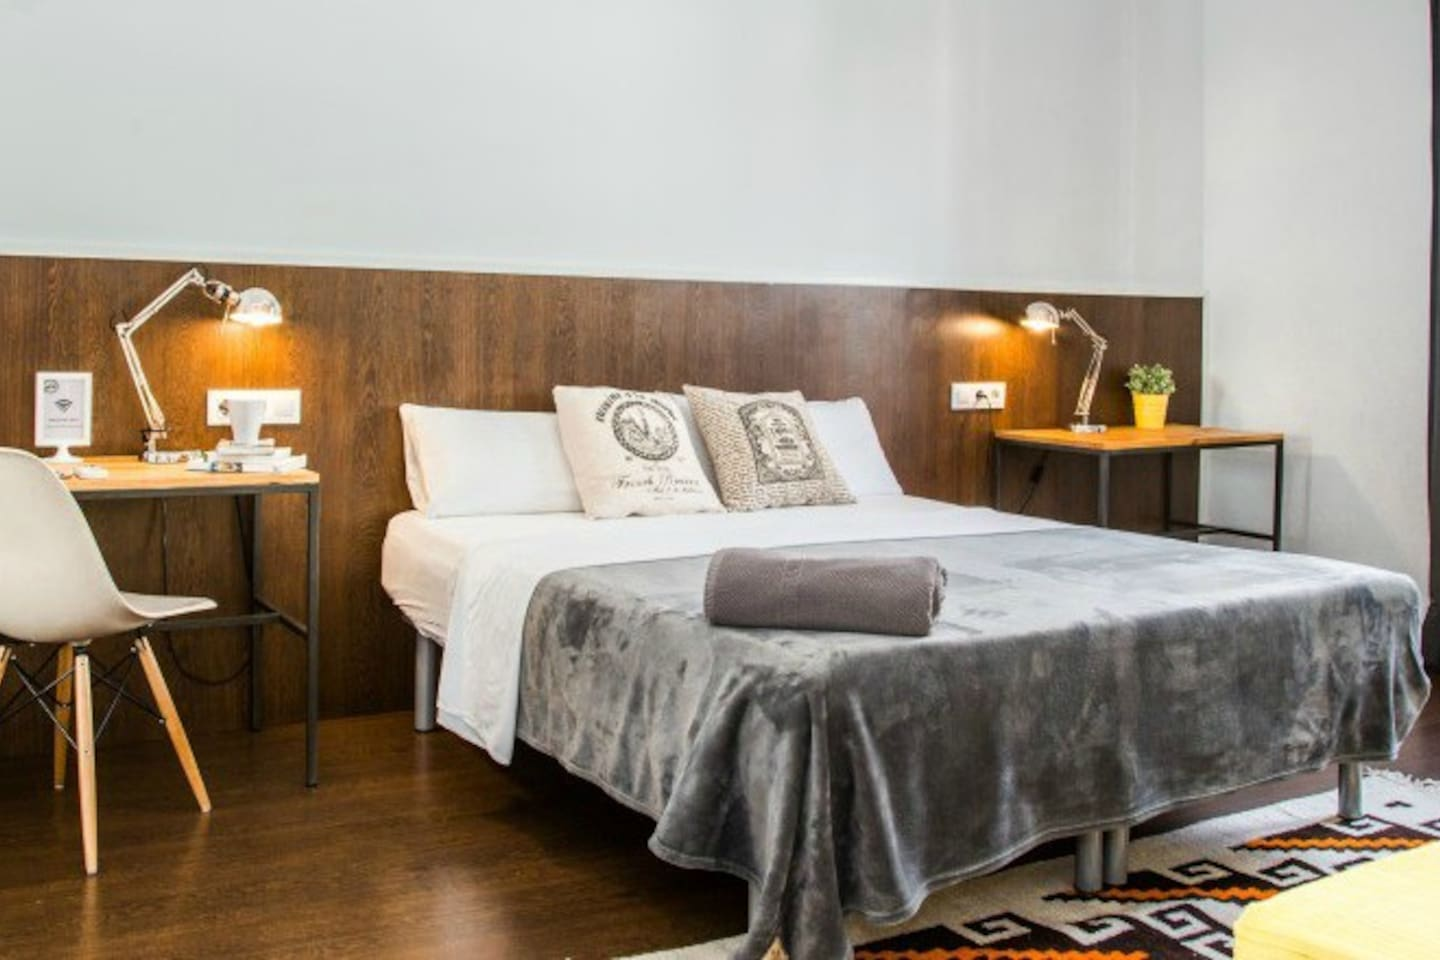 Private triple superior bedroom. Can be set up with one large double bed and 1 single bed, or 3 single beds, as you prefer. Exterior windows. Located on a 5th floor.